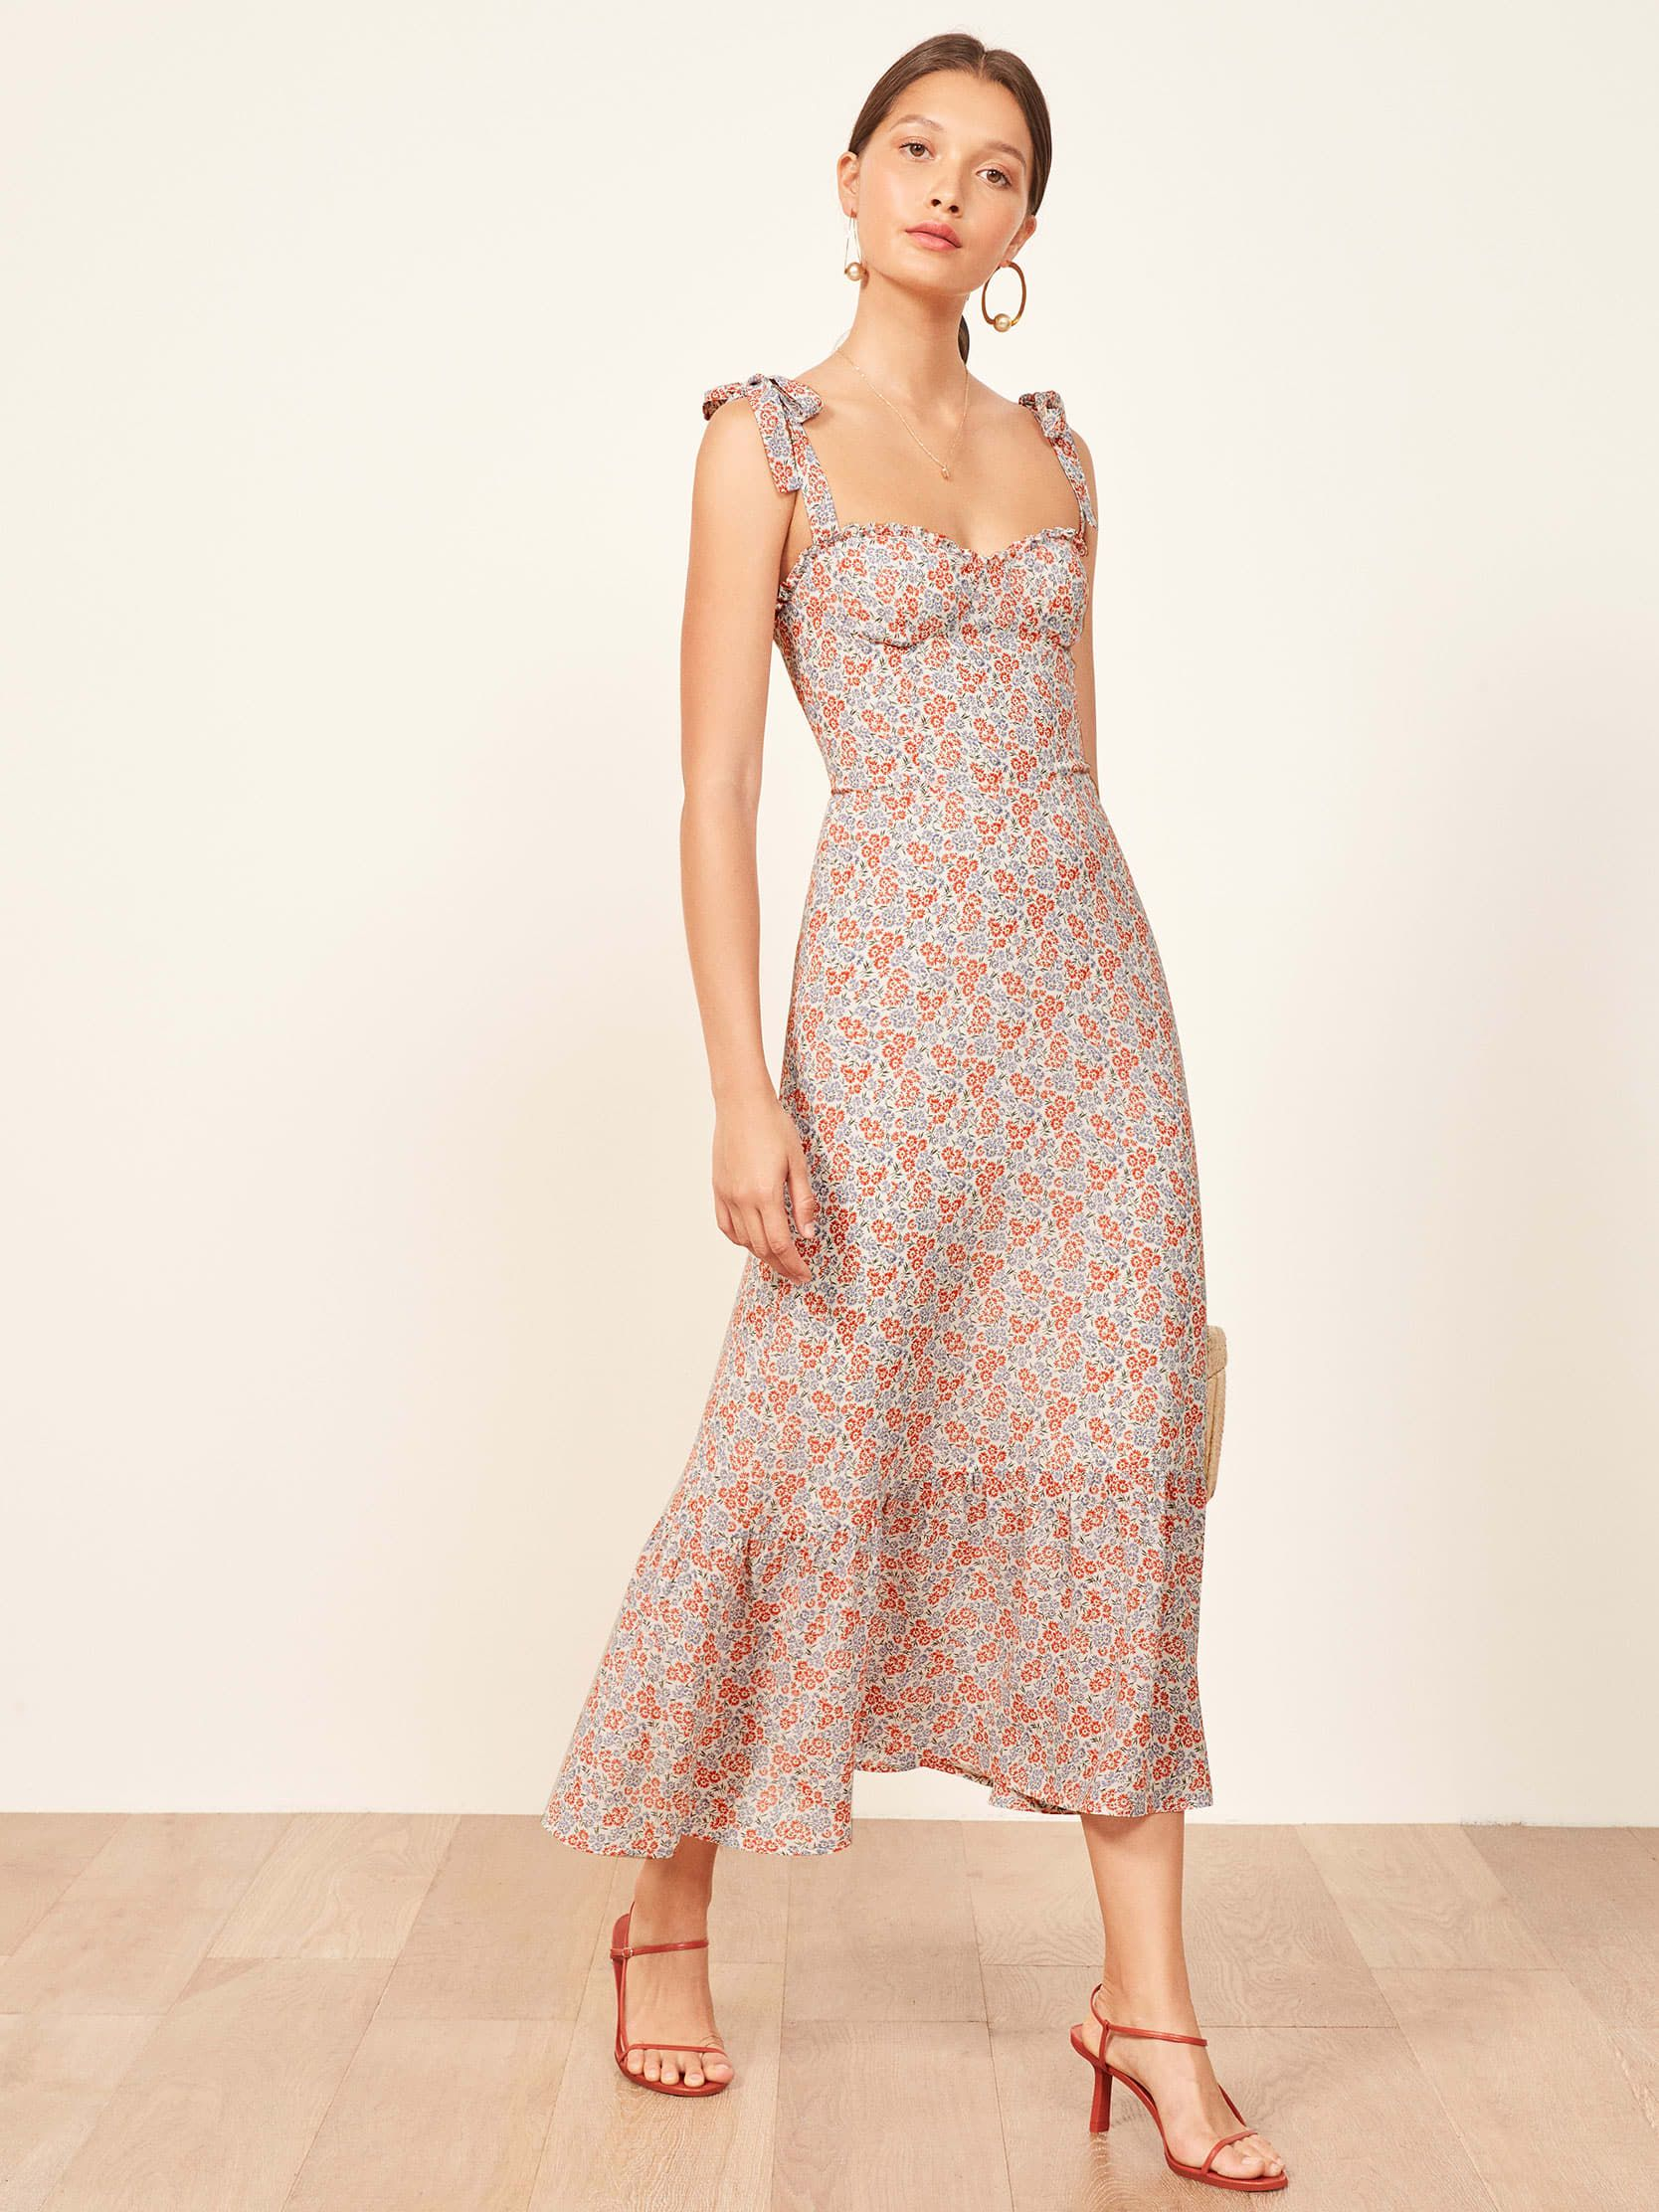 Nikita Dress thereformation.com $248.00 SHOP NOW Reformation has become known for melding cool-girl style with sustainability. When you click on any item on the Reformation site, there's a breakdown of its environmental impact, ensuring shoppers feel great about the items they purchase.